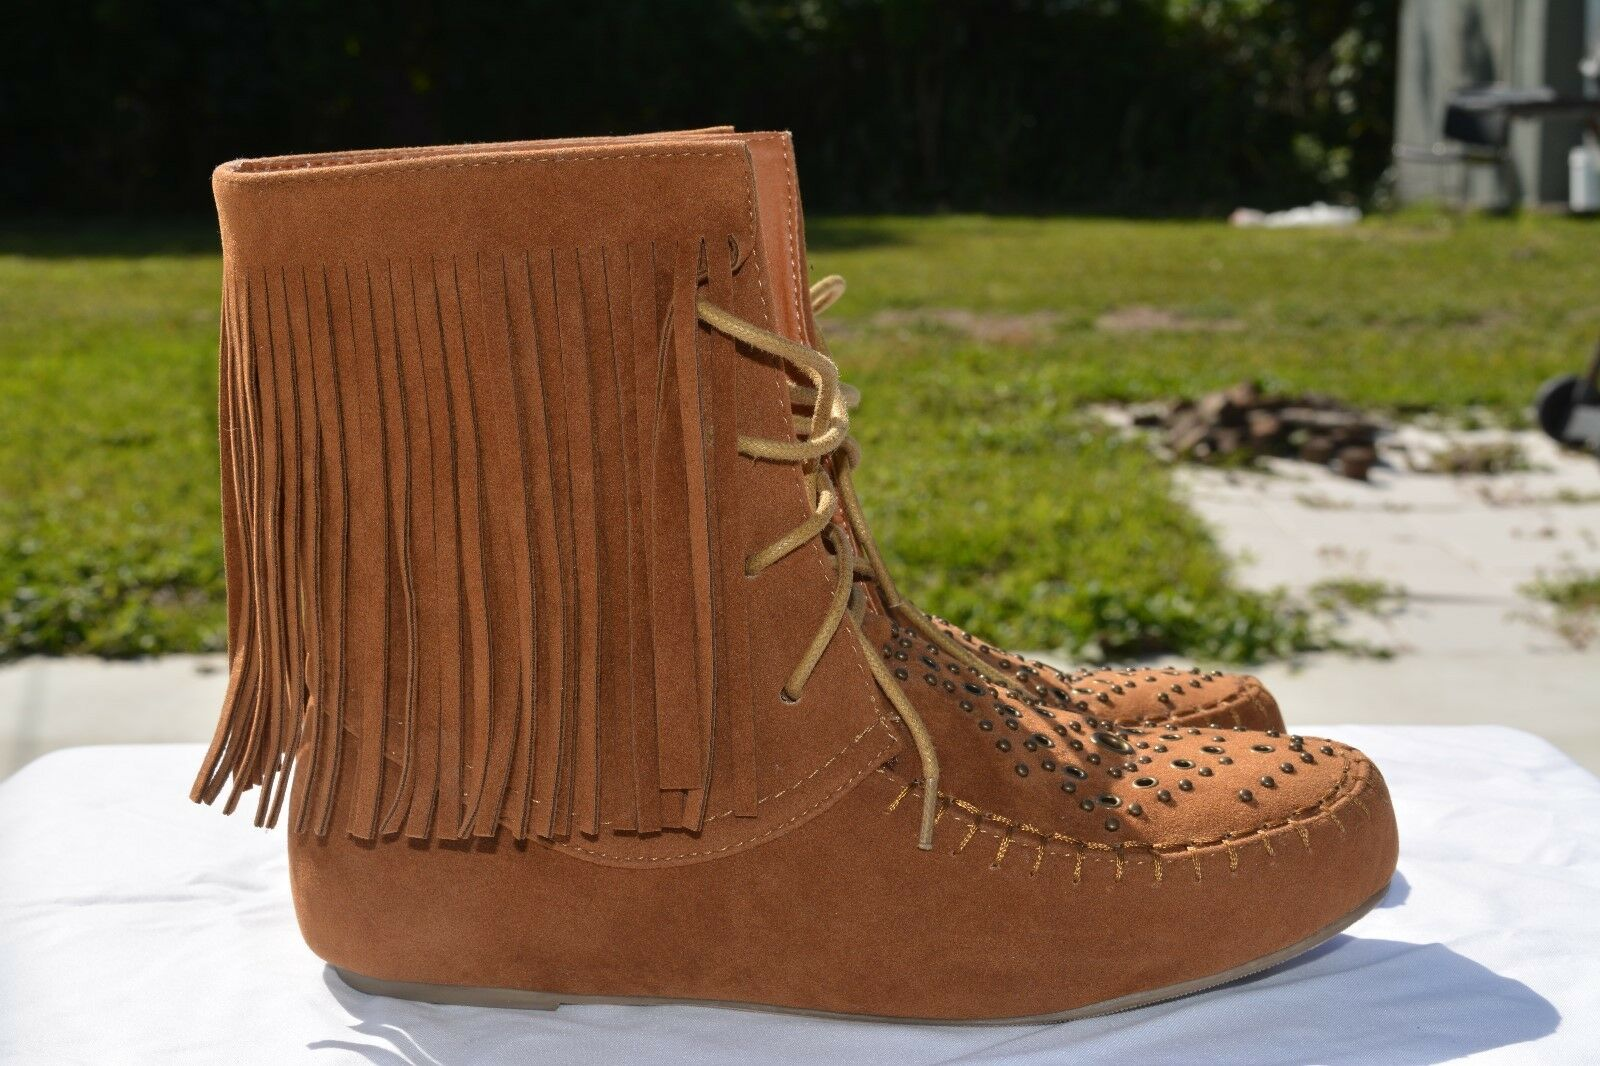 Steve Madden Womens Brown Fringe Studded Ankle Moccasins Stylish Cute Size 6.5